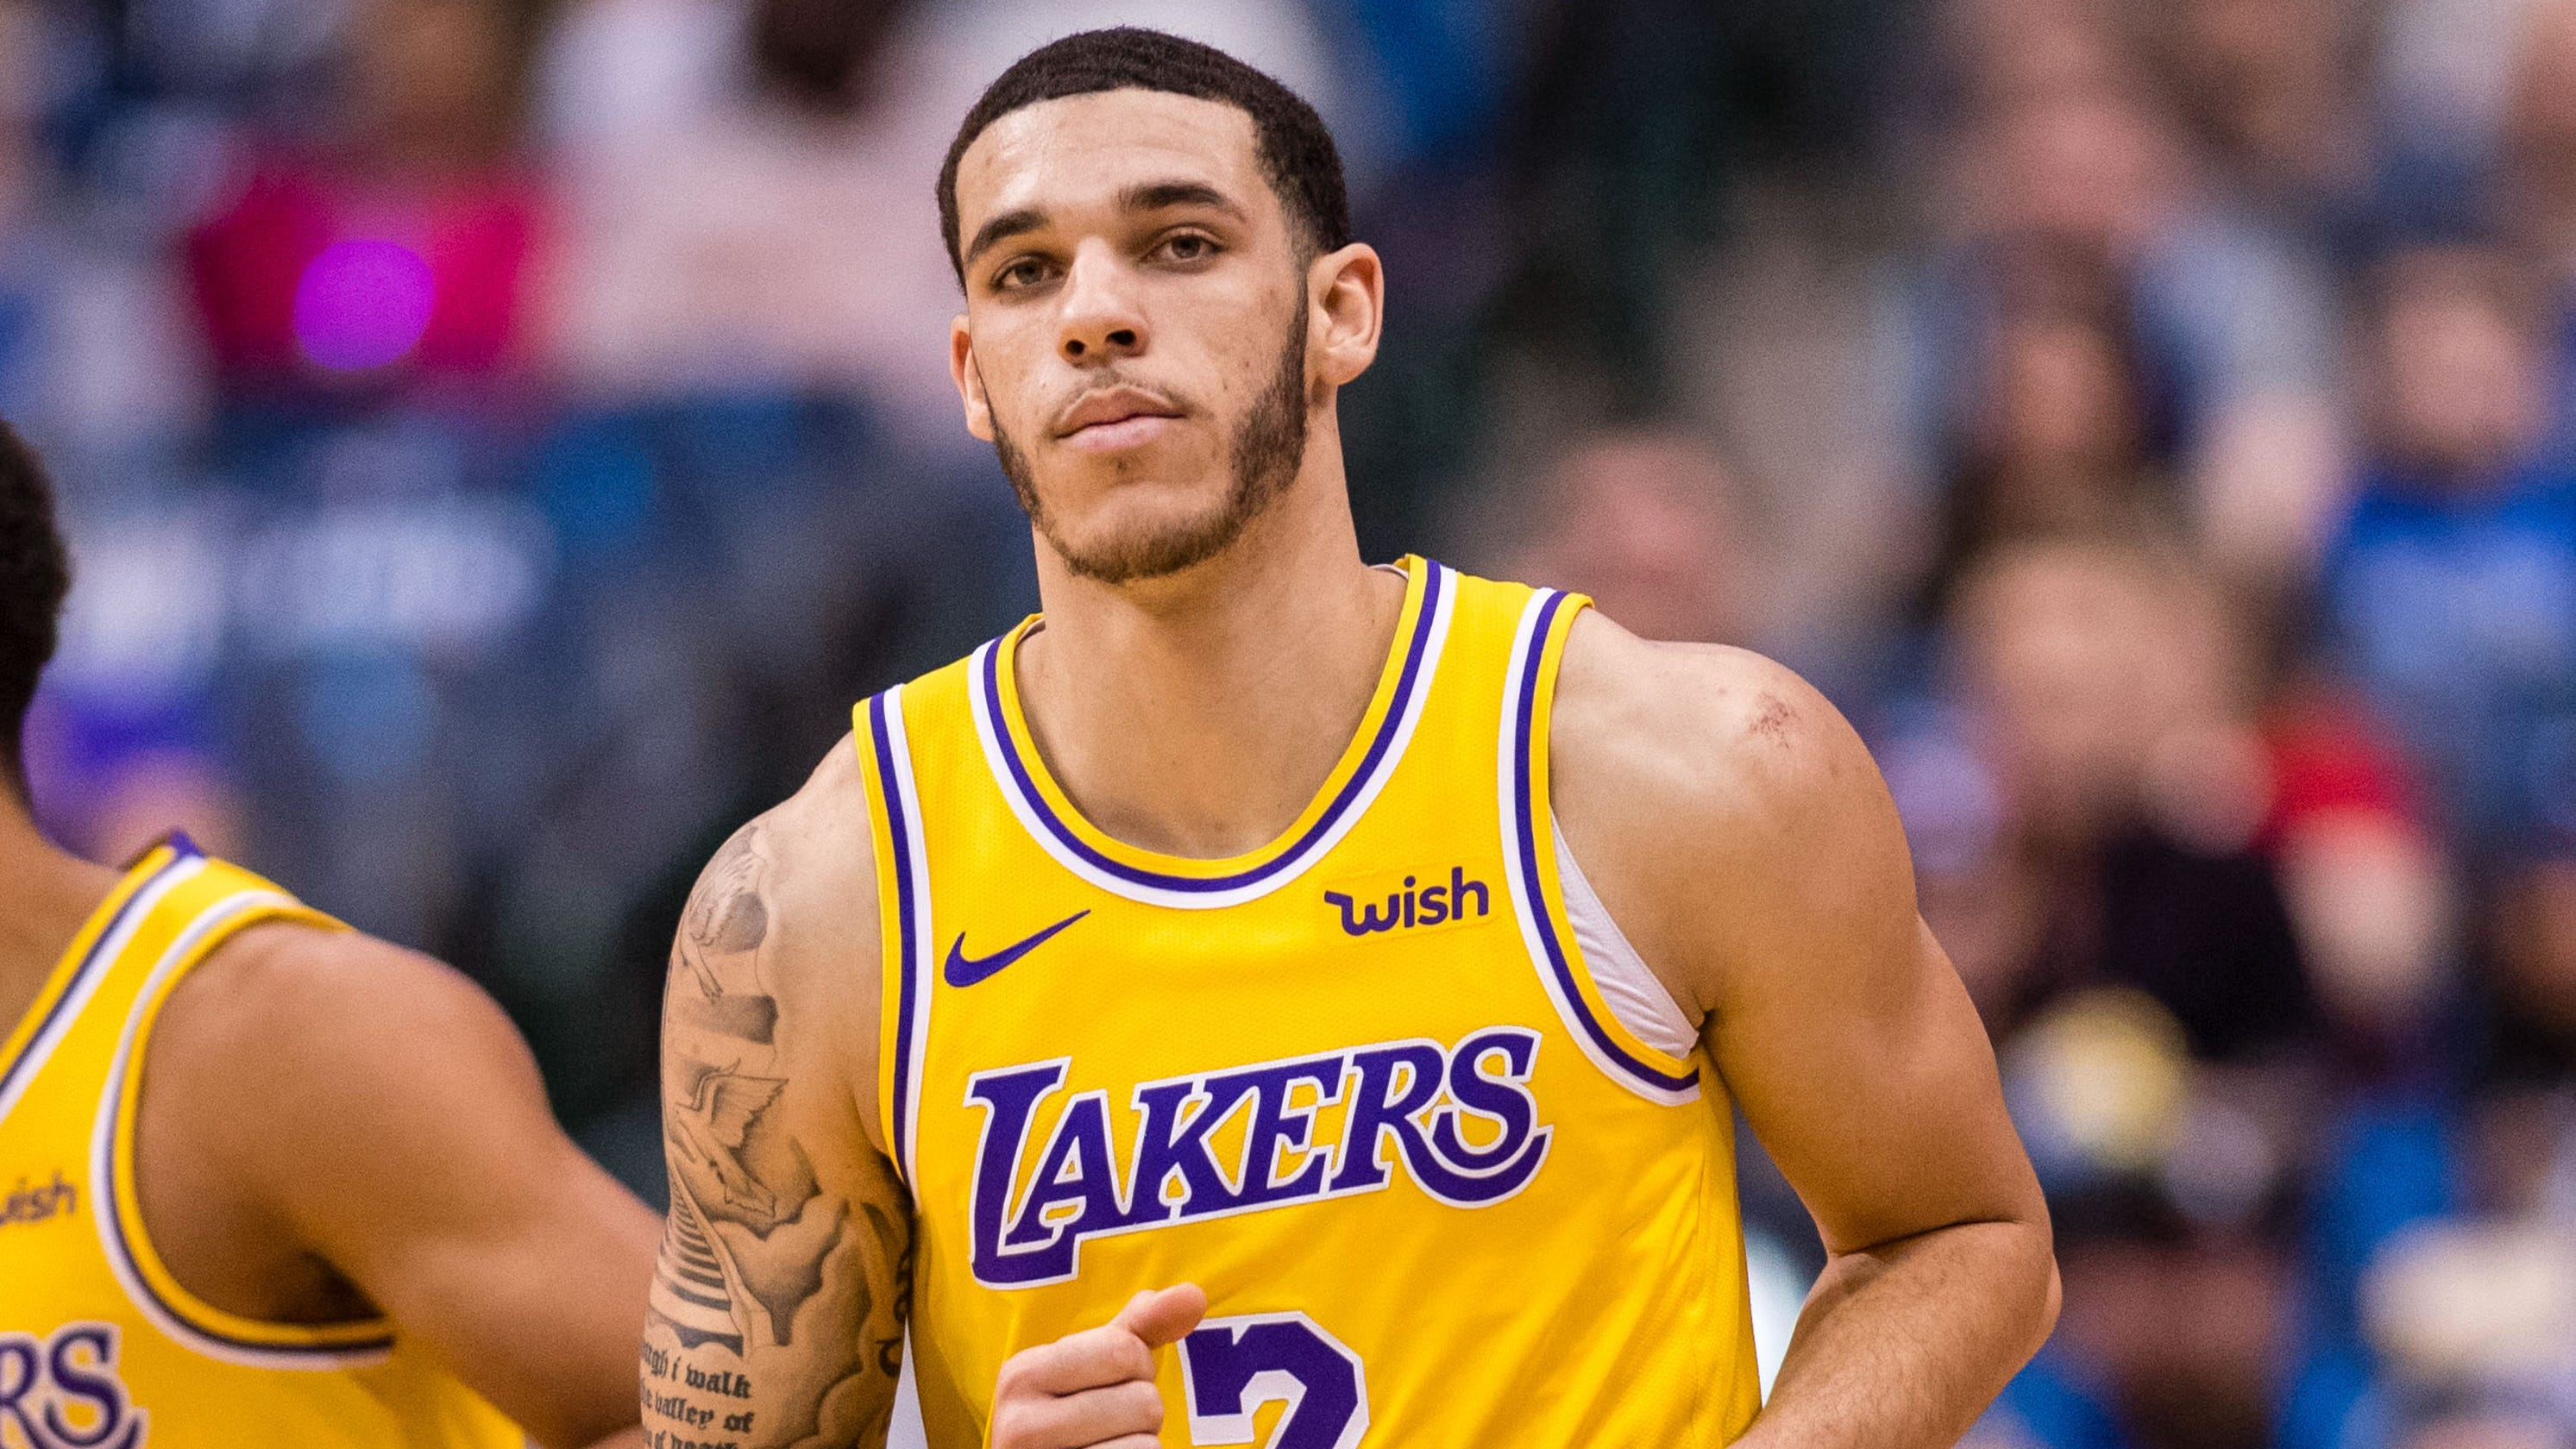 a9d290e42fb Lonzo Ball out 4-6 weeks for Lakers with sprained ankle